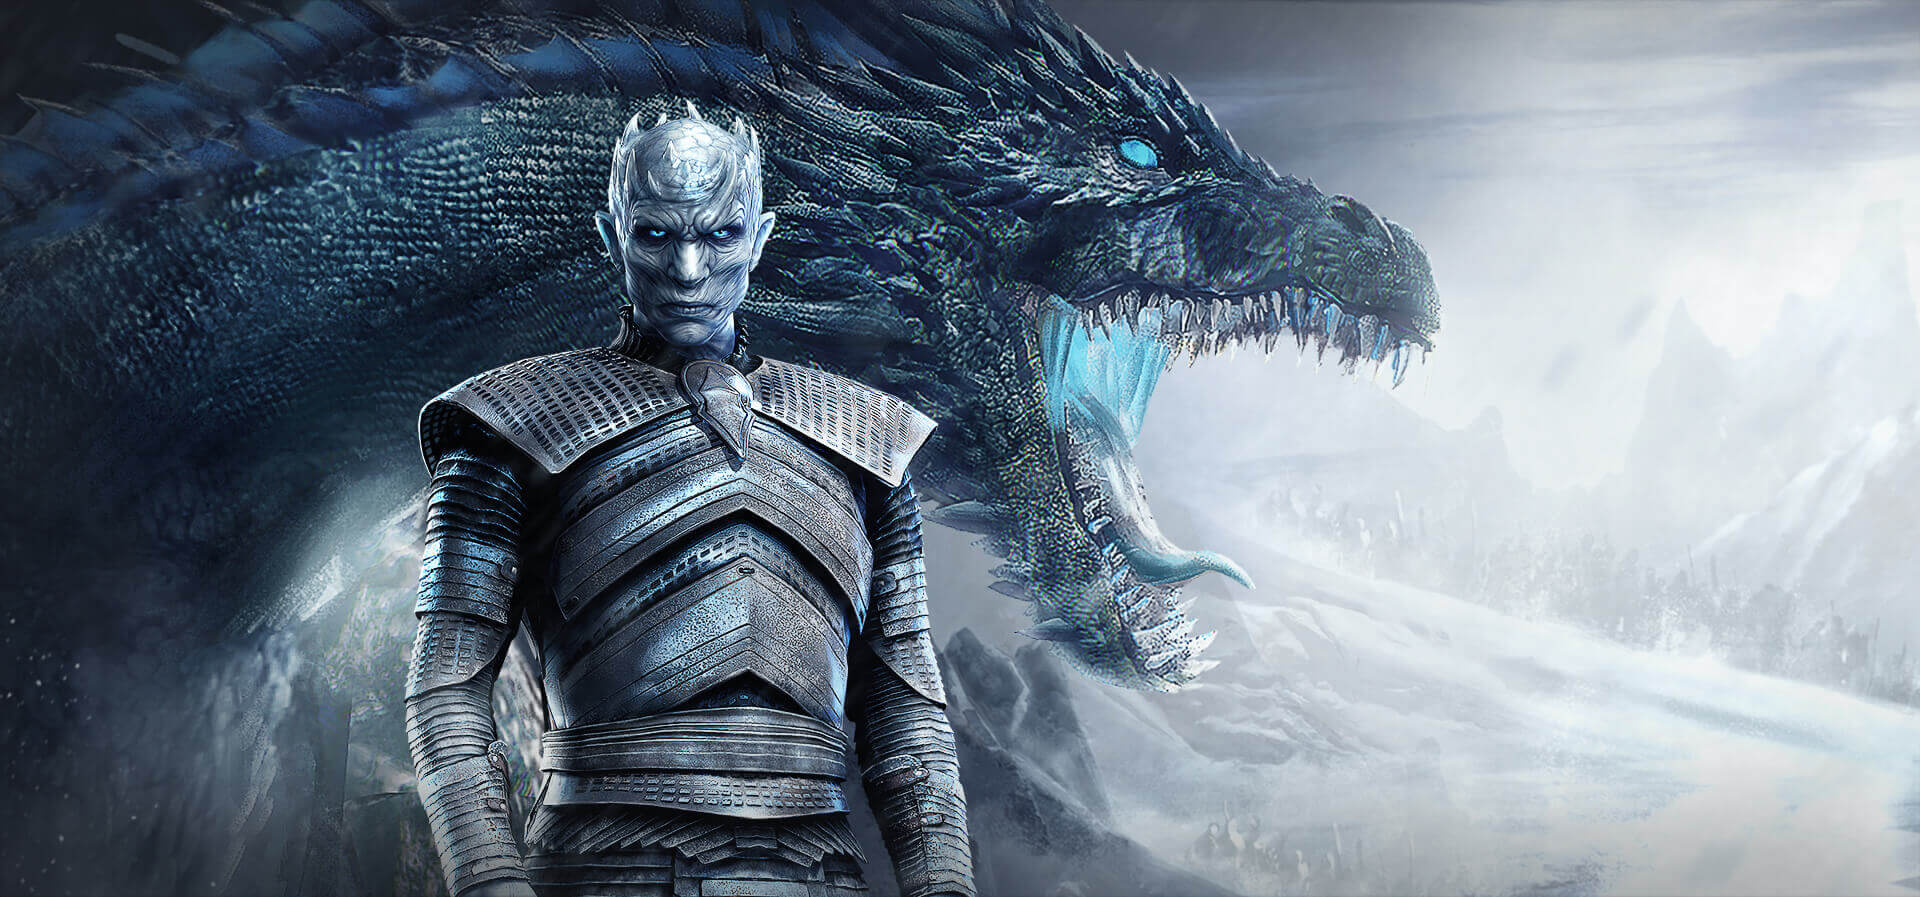 Https Bs To Game Of Thrones